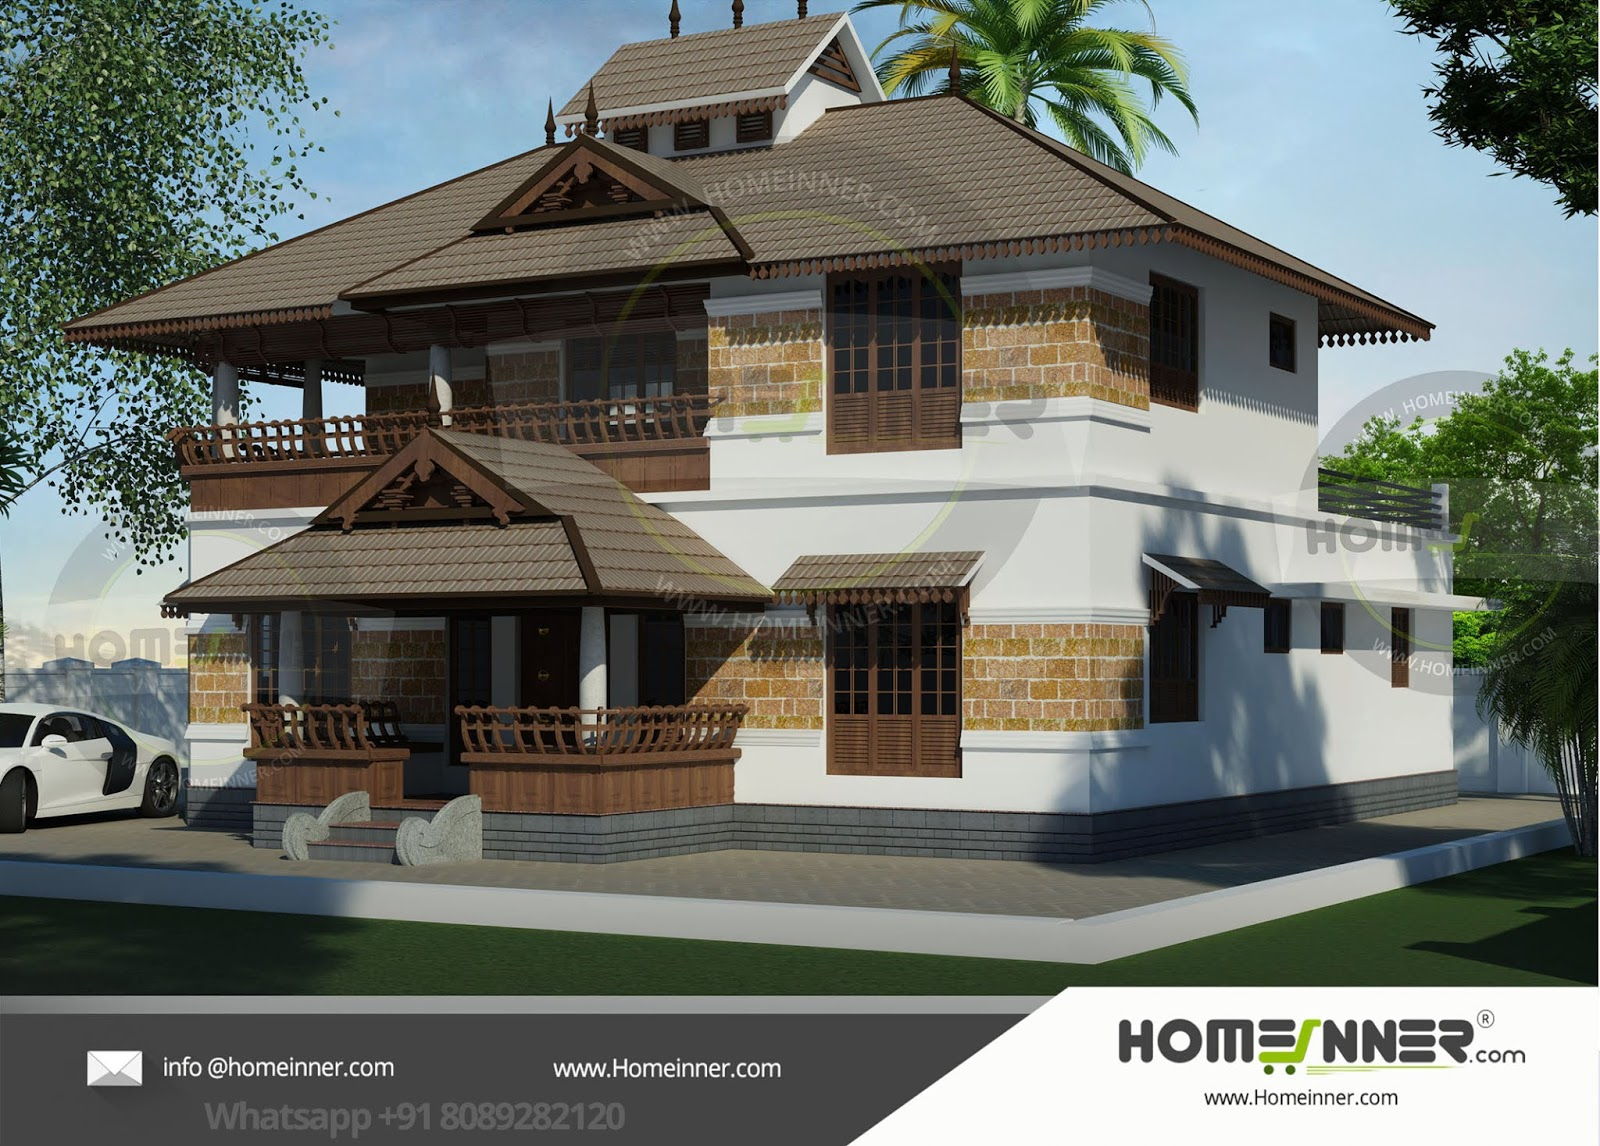 35 Lakh 5 BHK 2495 sq ft Udupi Villa